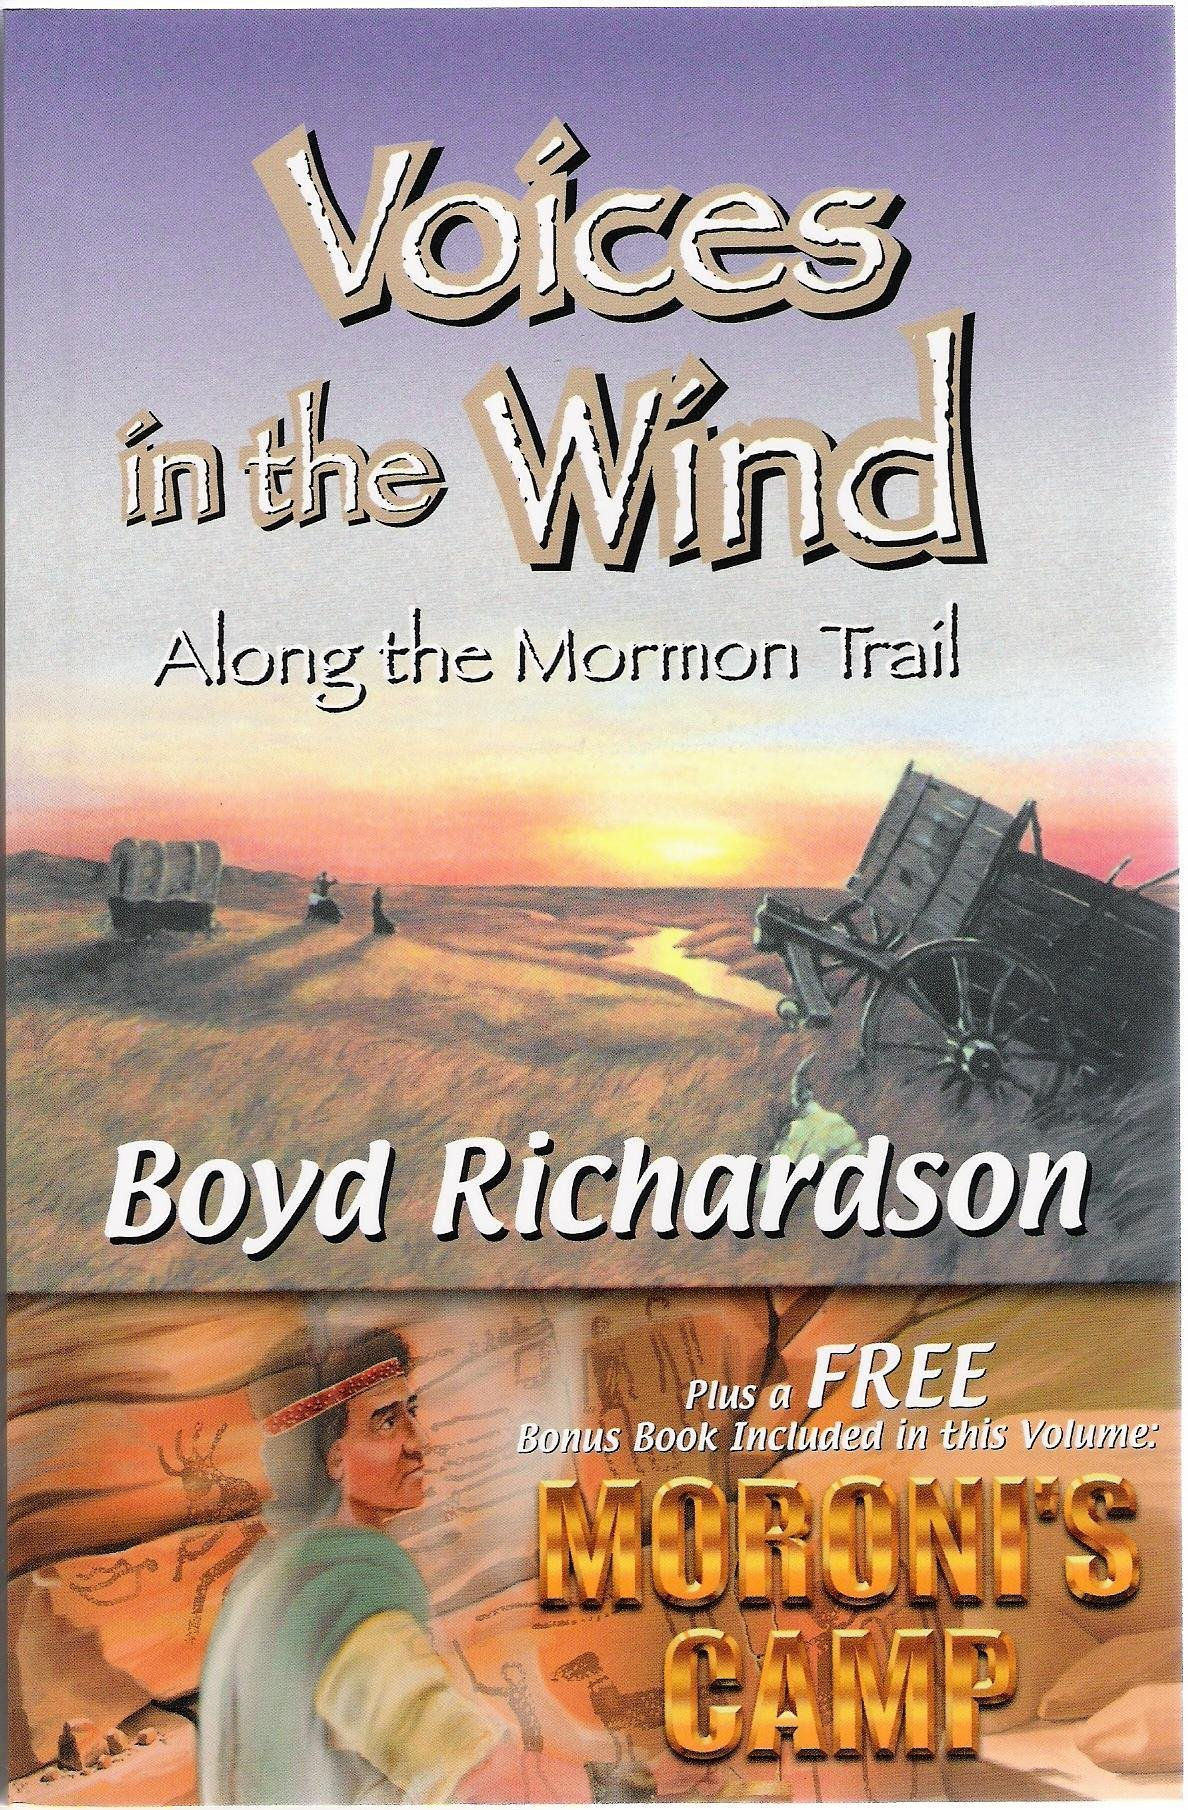 Download Voices in the Wind - Along the Mormon Trail PDF